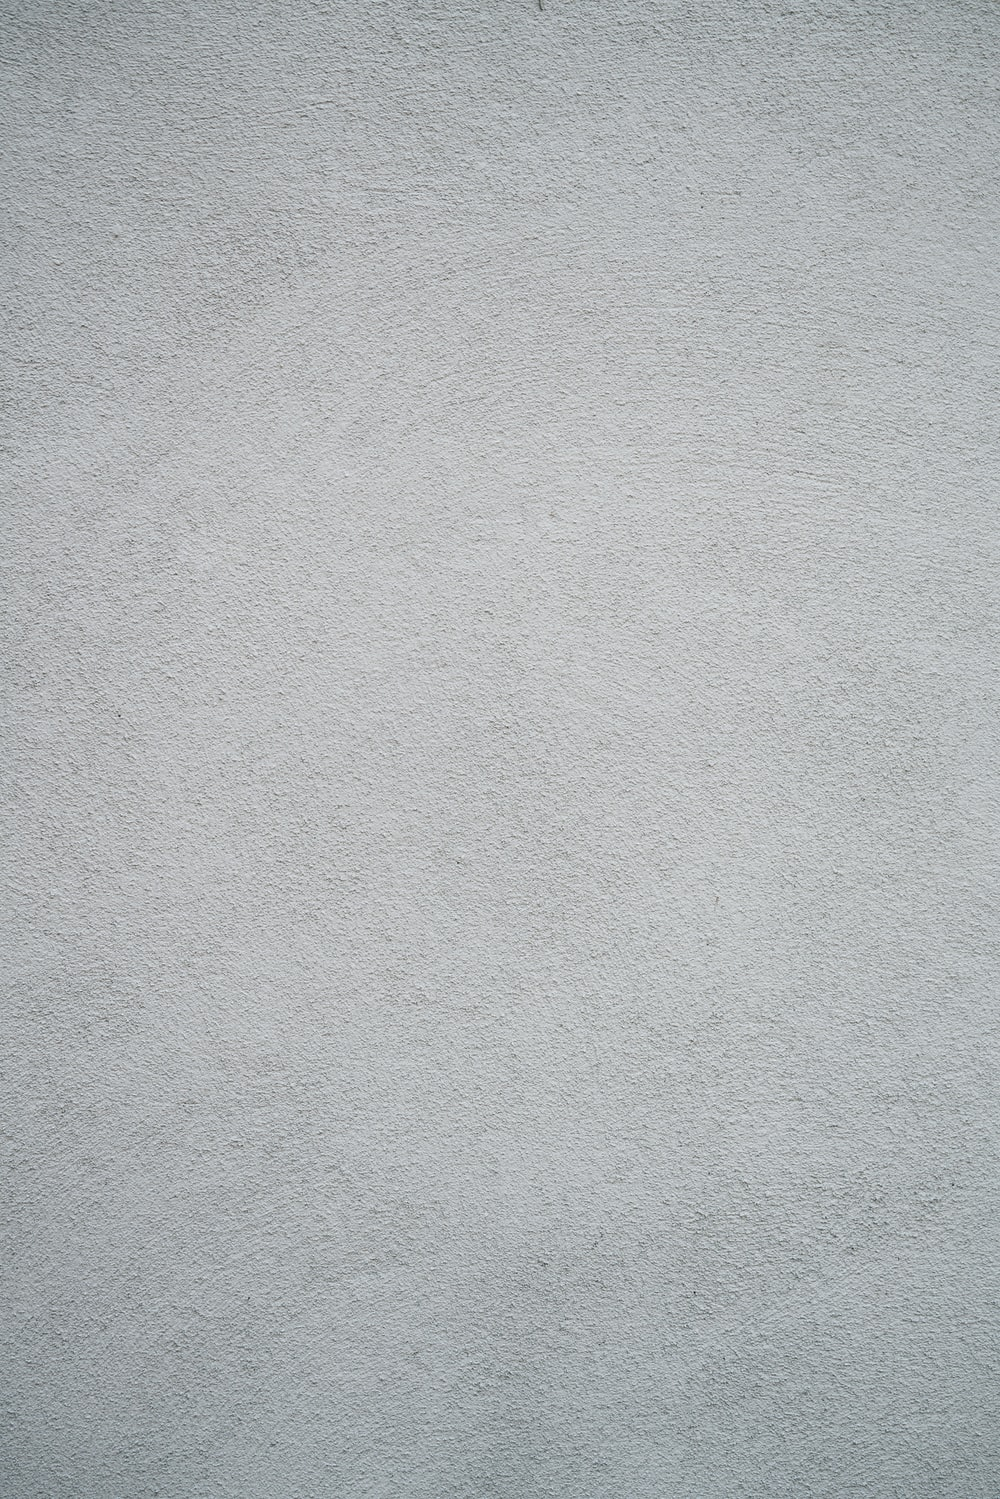 gray concrete painted wall